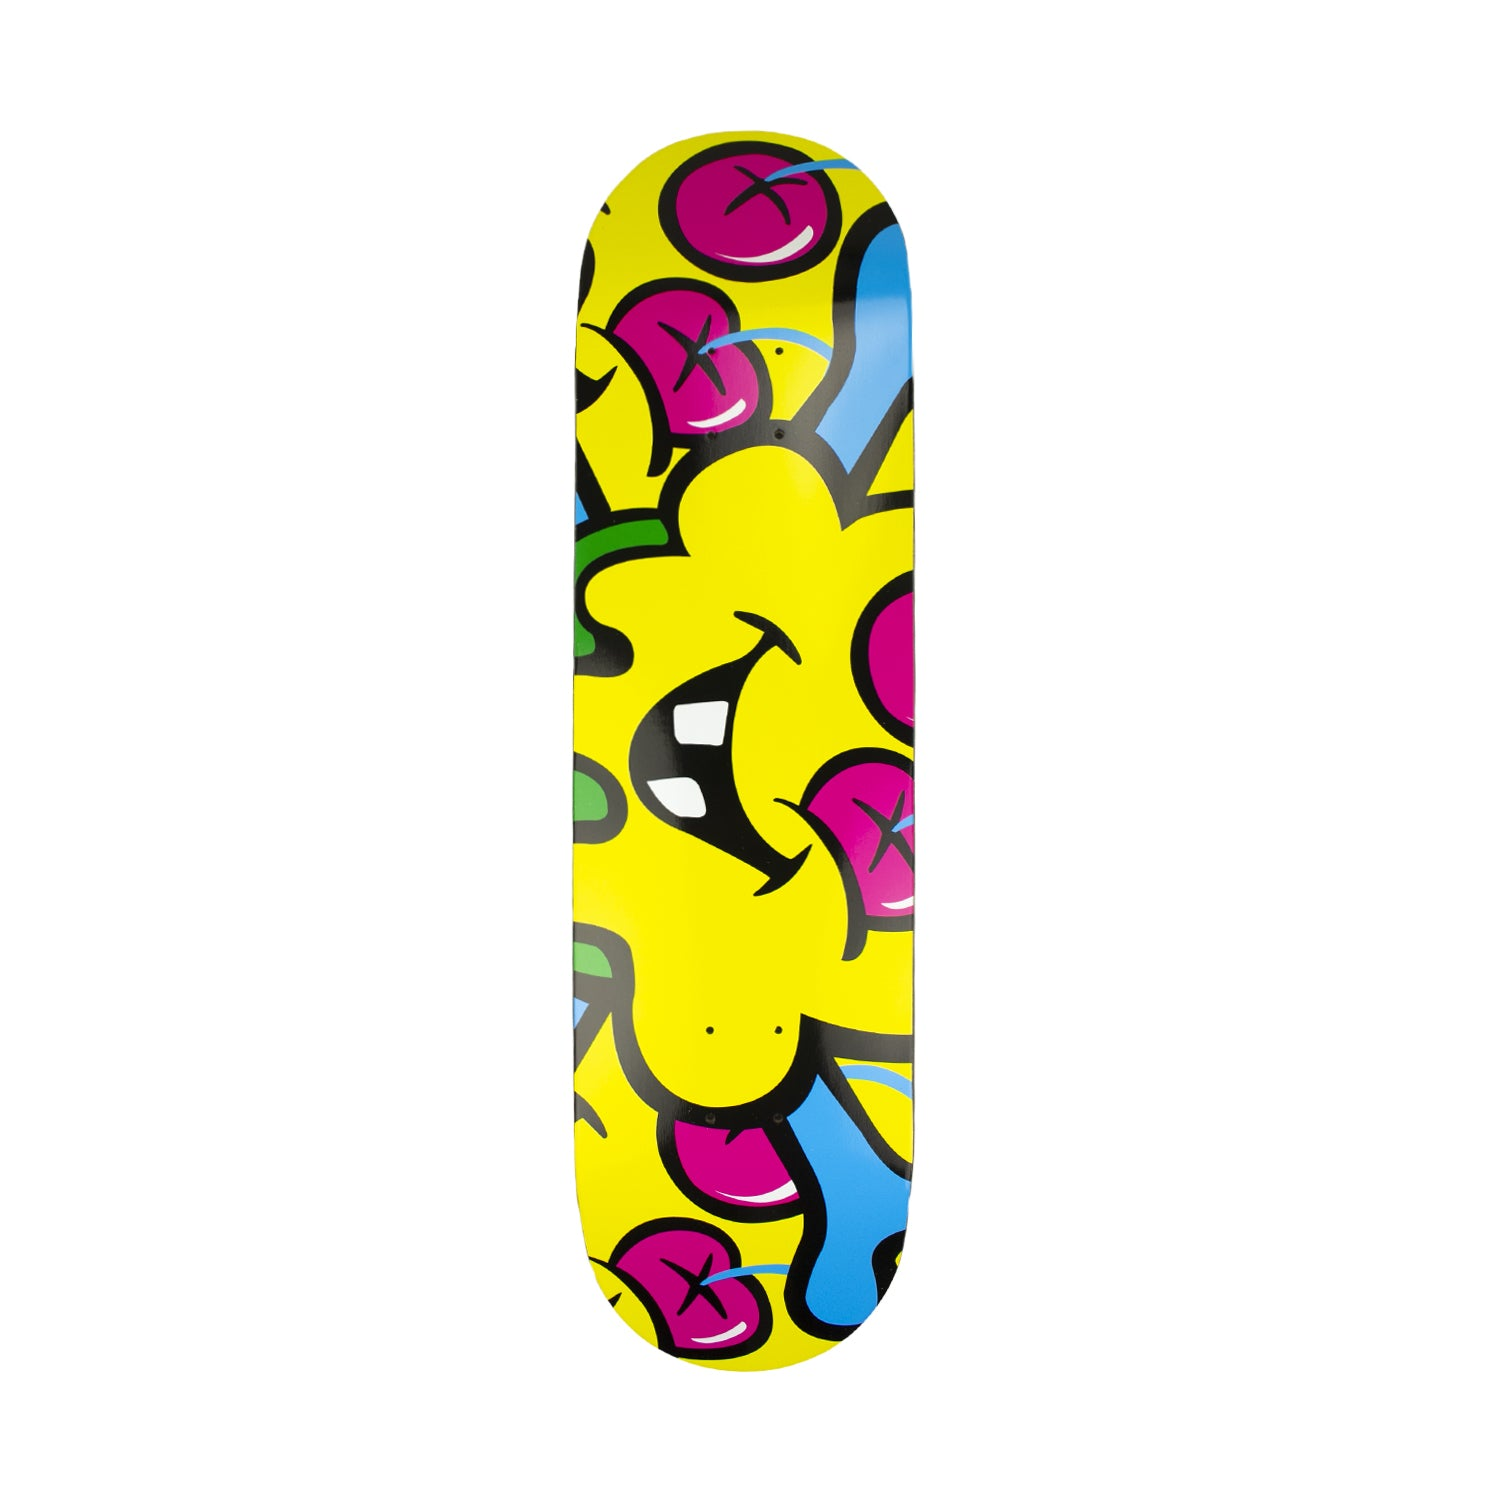 THREE SKATEDECK